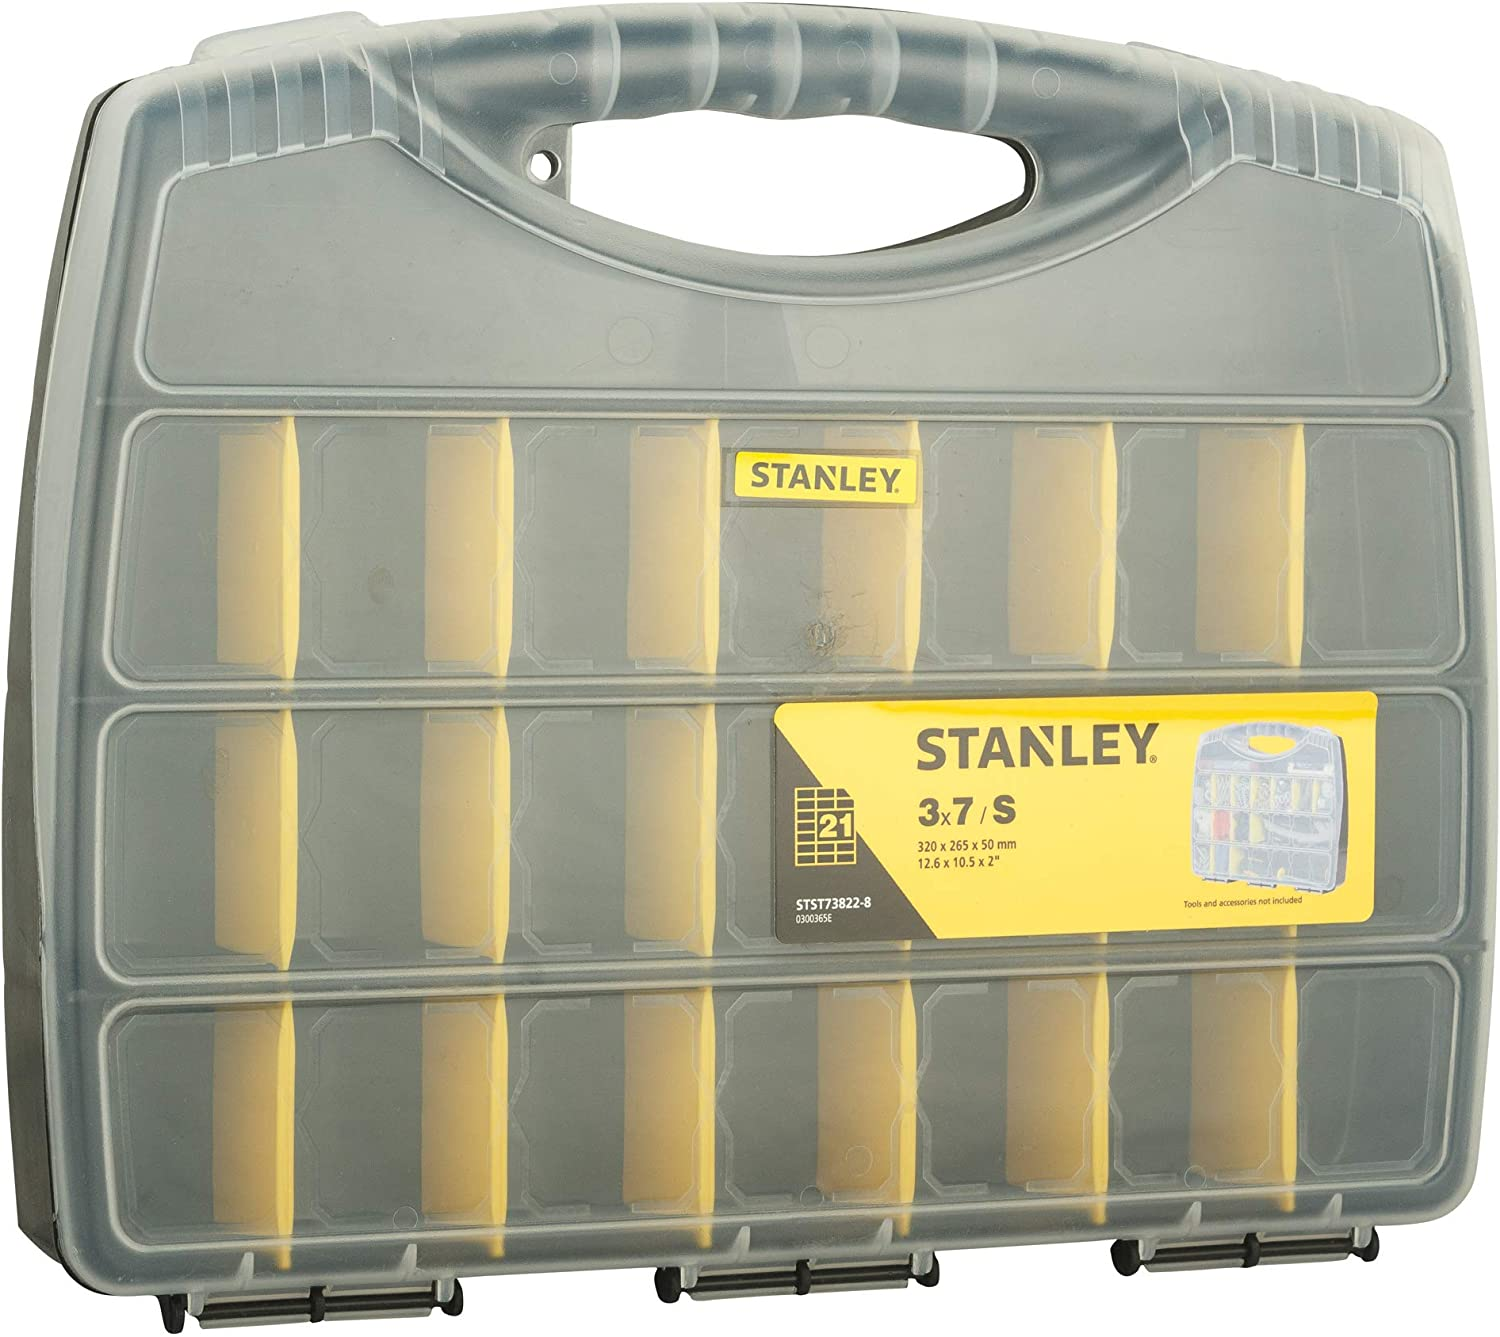 STANLEY STST73822-8, Polycarbonate Small Organizer with 21 Separator Slots and Transparent Lid